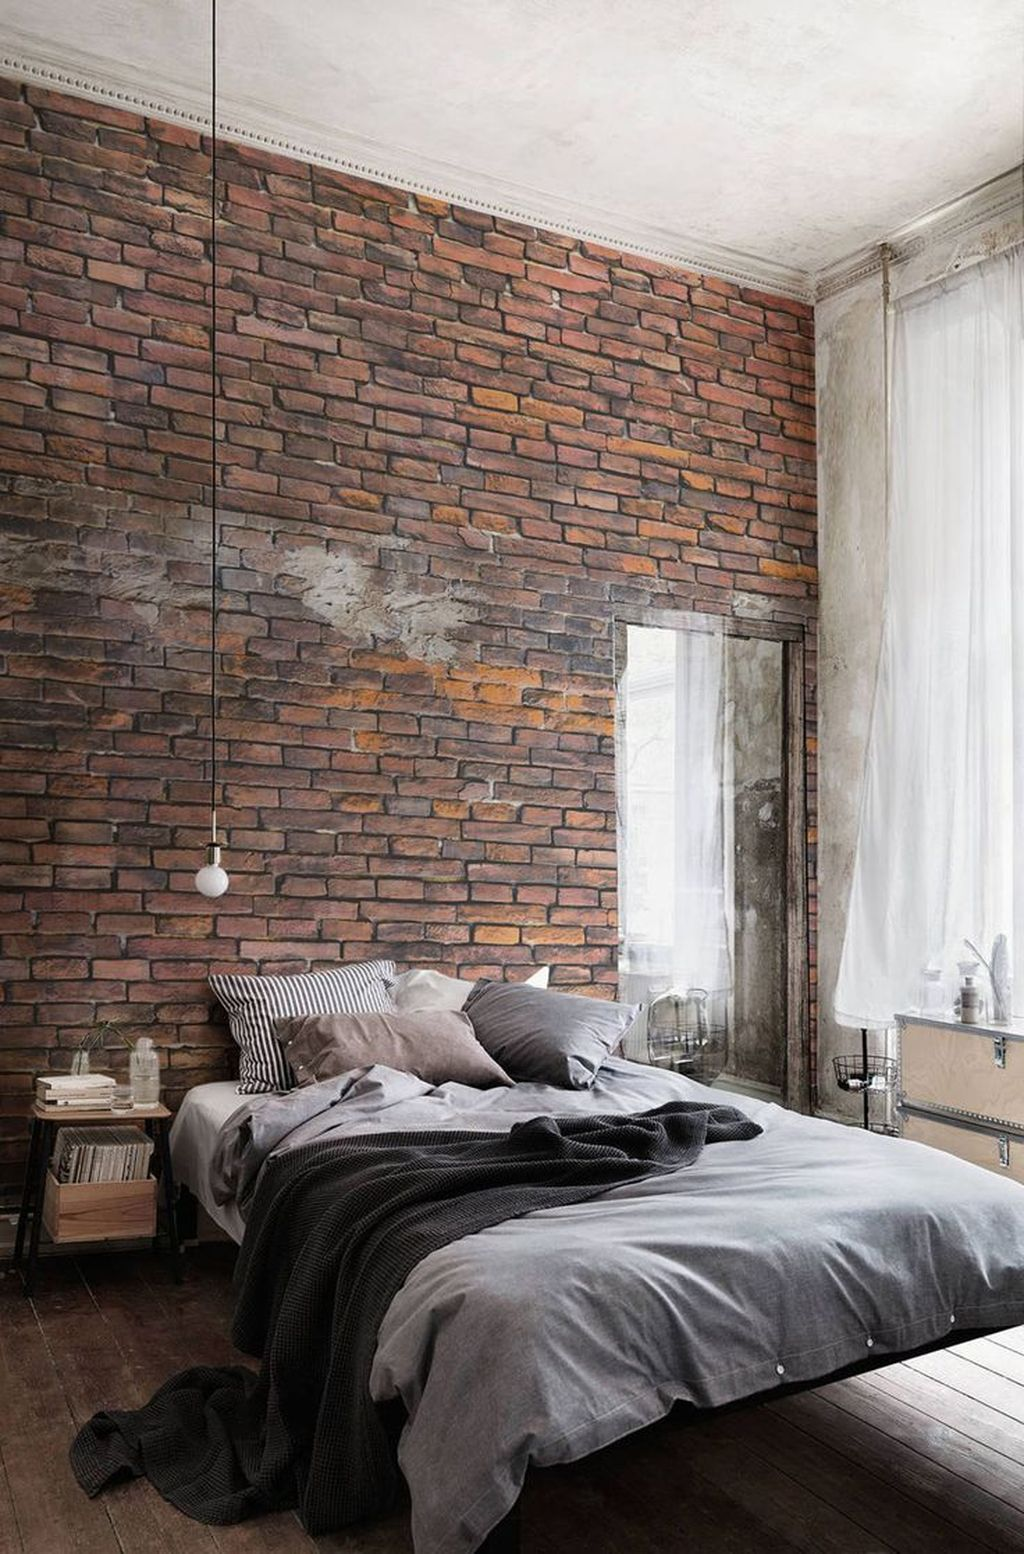 Modern Industrial Bedroom Small Modern Industrial Apartment Decoration Ideas 38 Round Decor